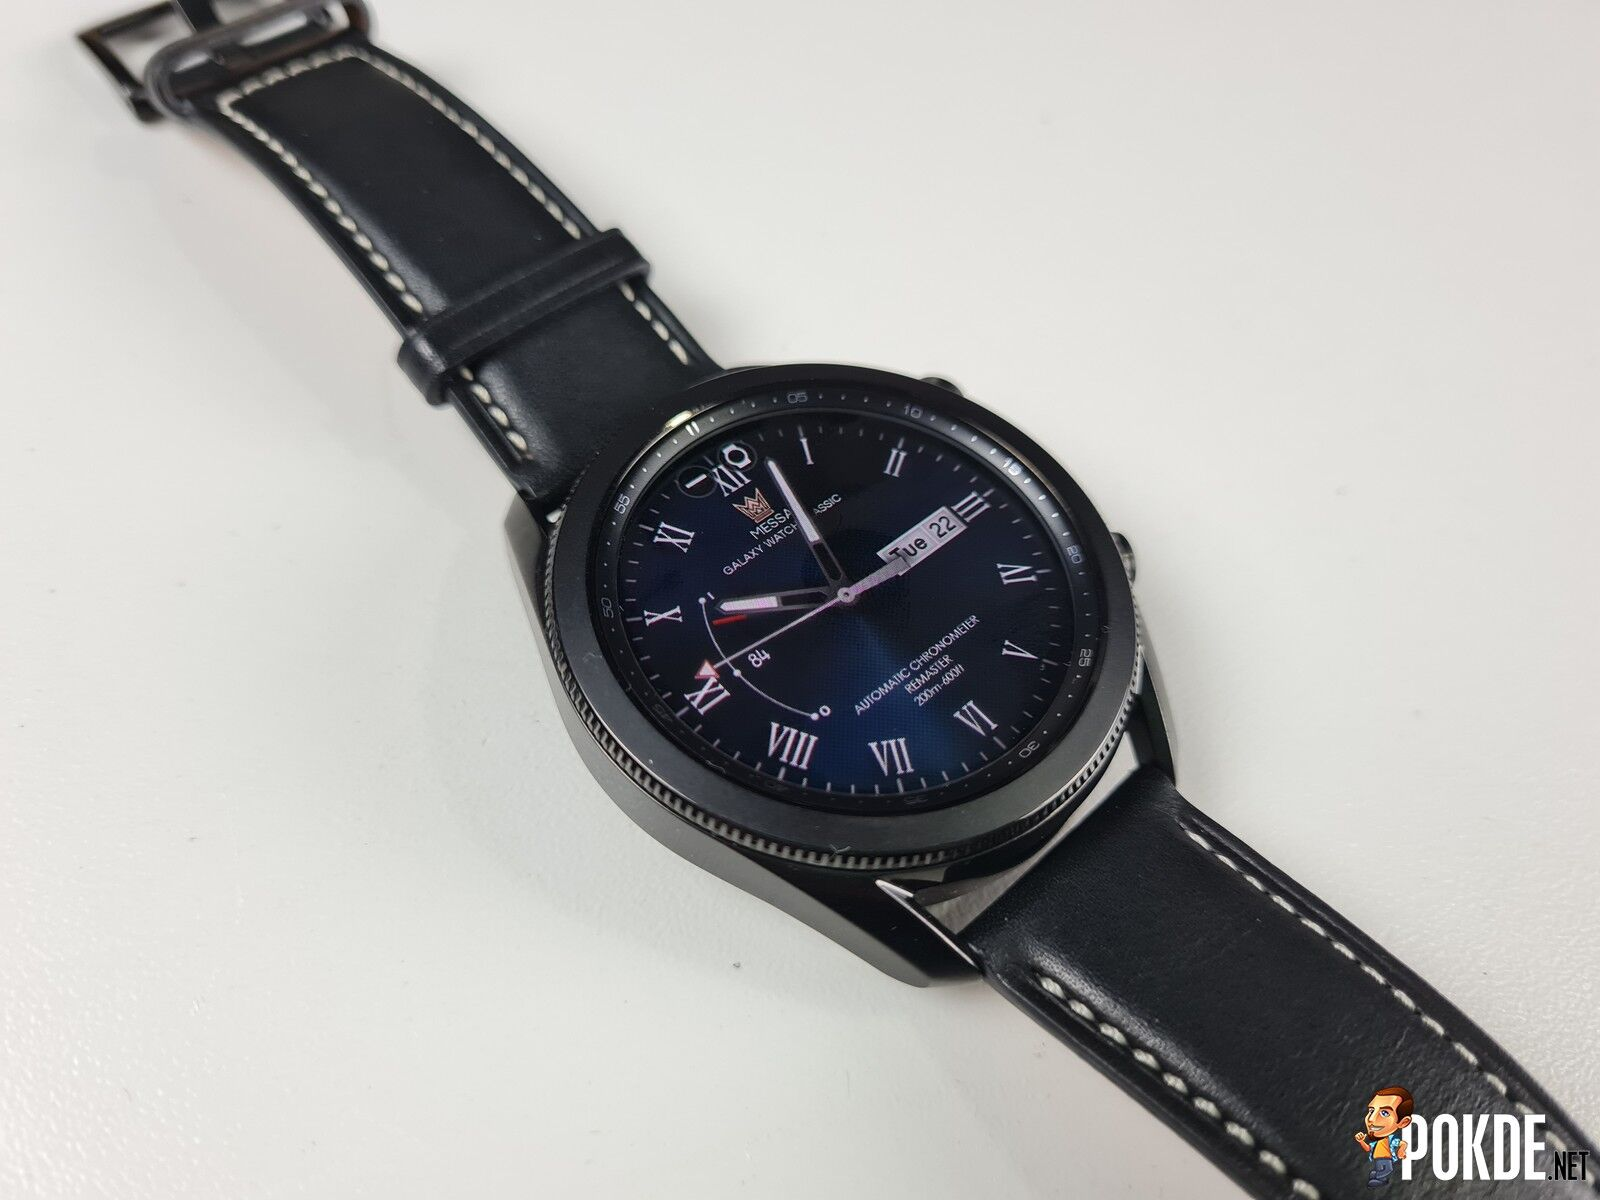 Samsung Galaxy Watch 3 Review - Classy, Feature-packed Smartwatch 24